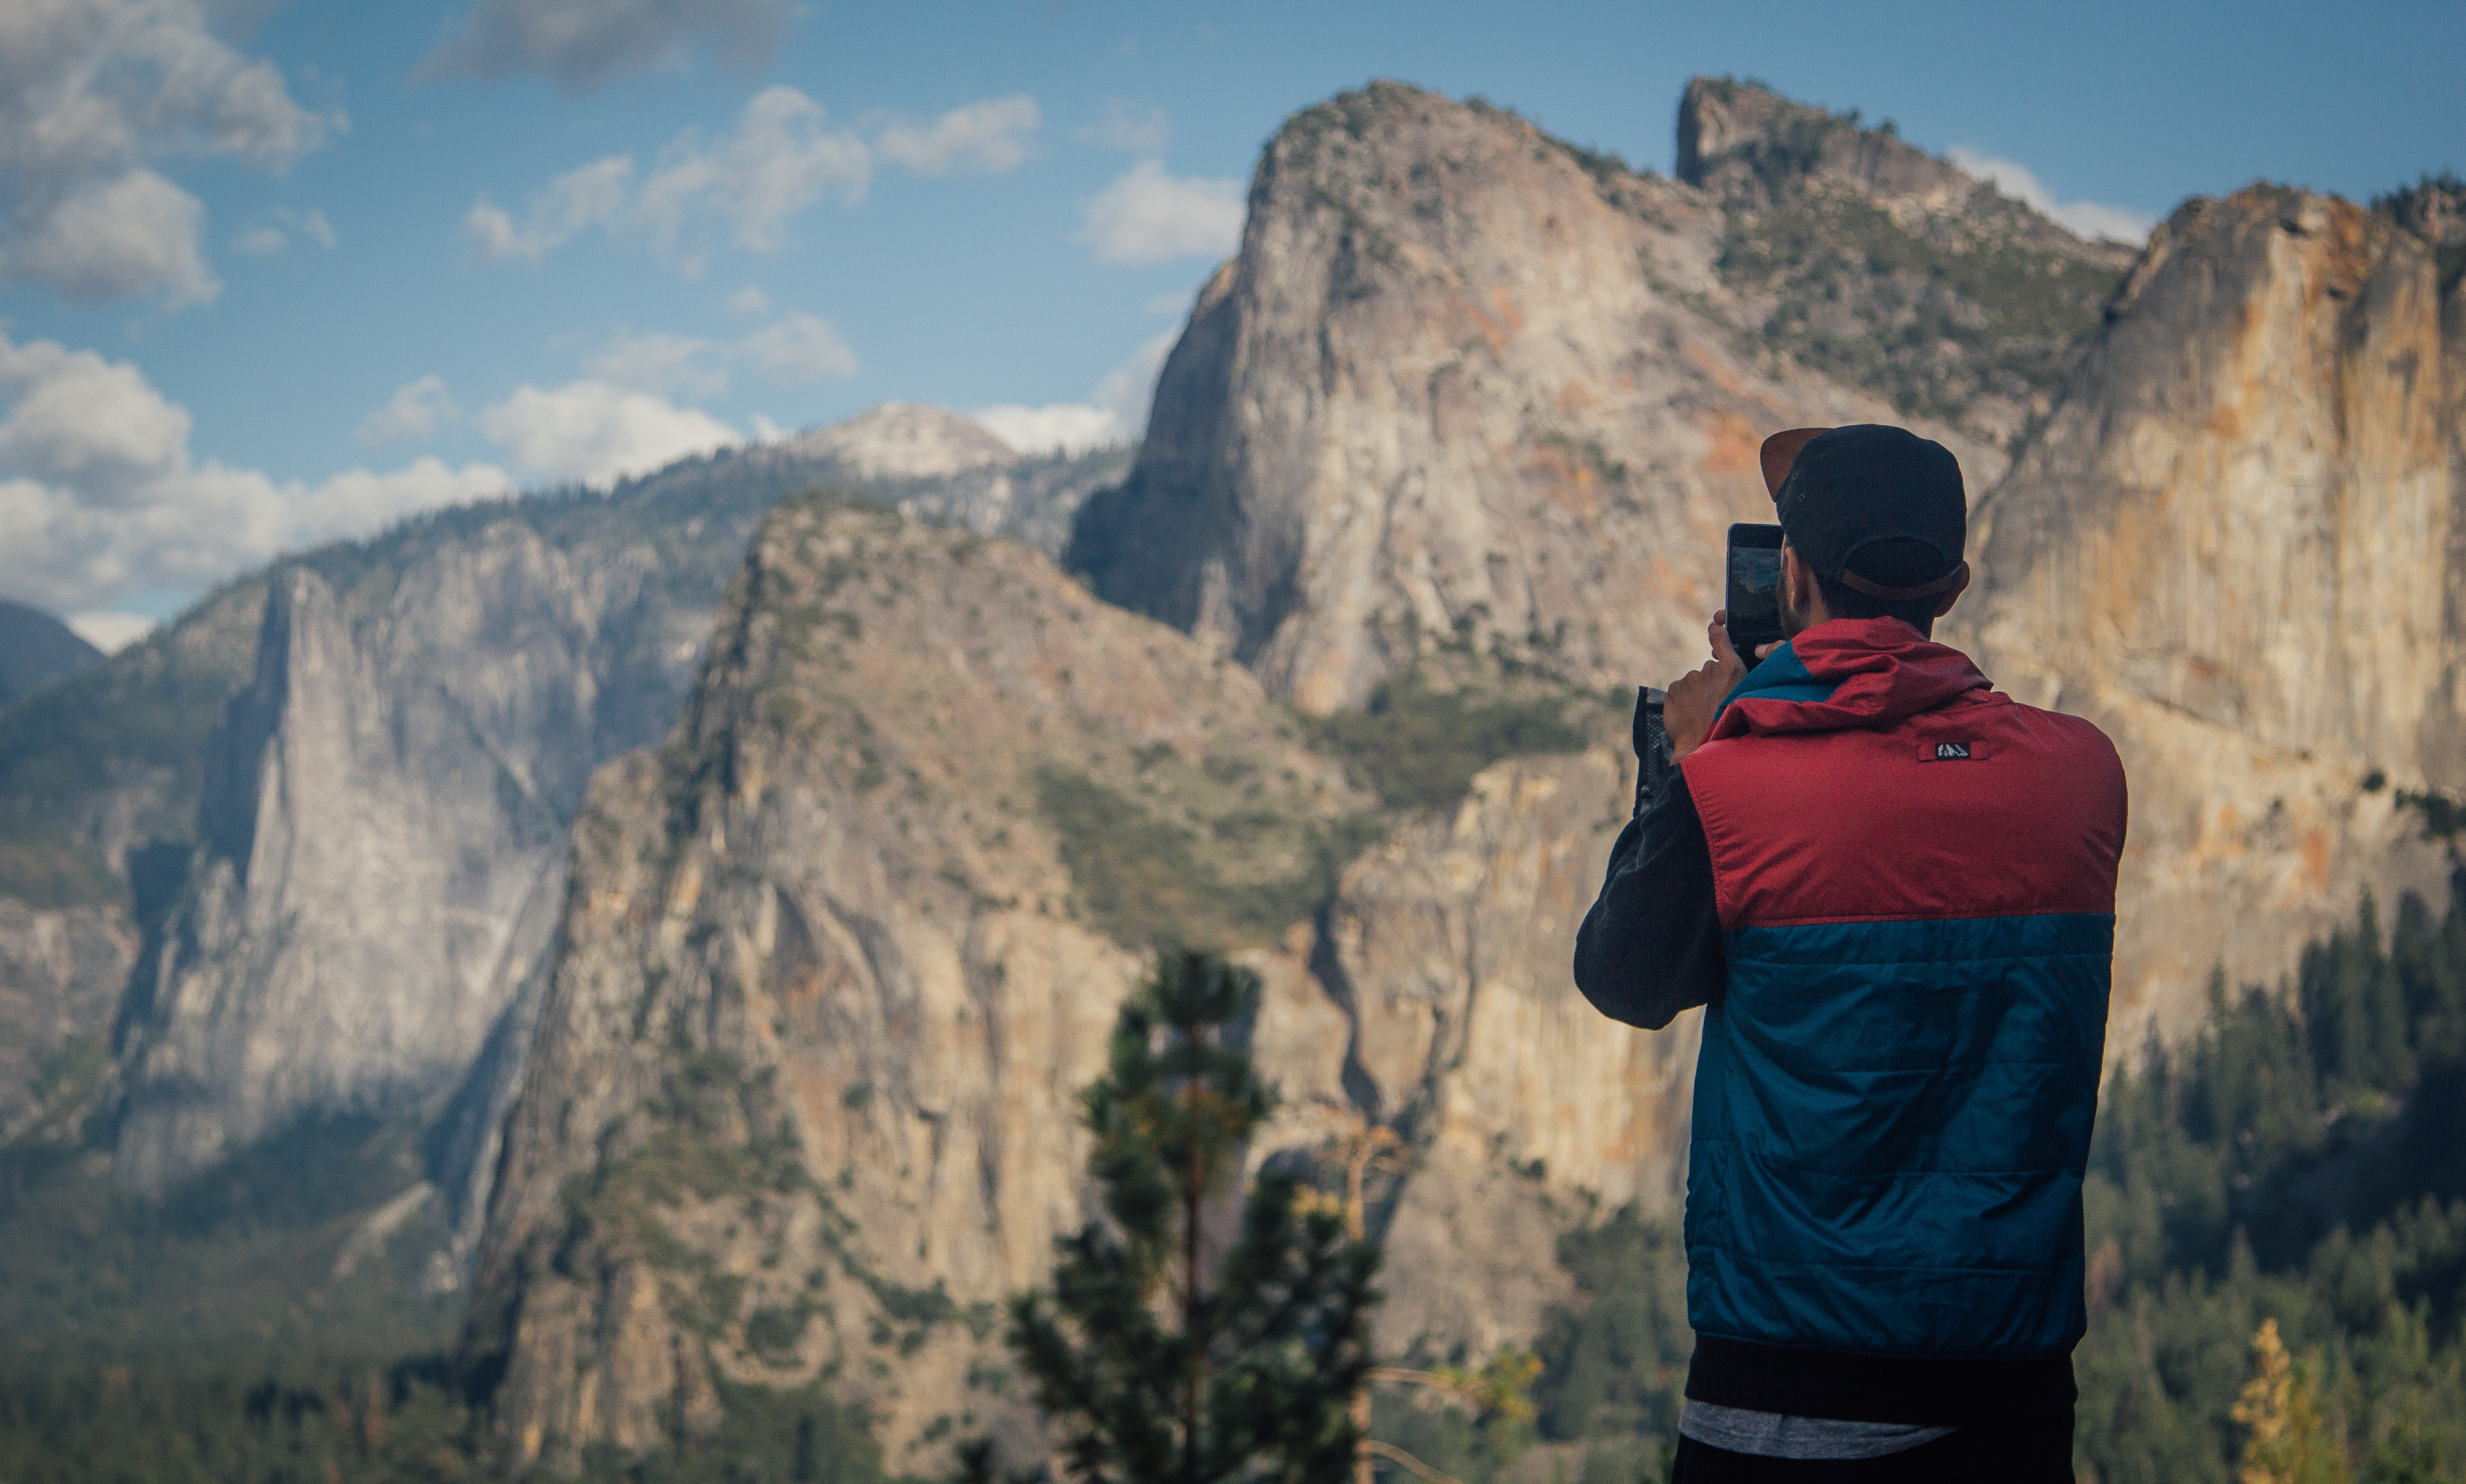 A man taking a photo with his phone in Yosemite National Park